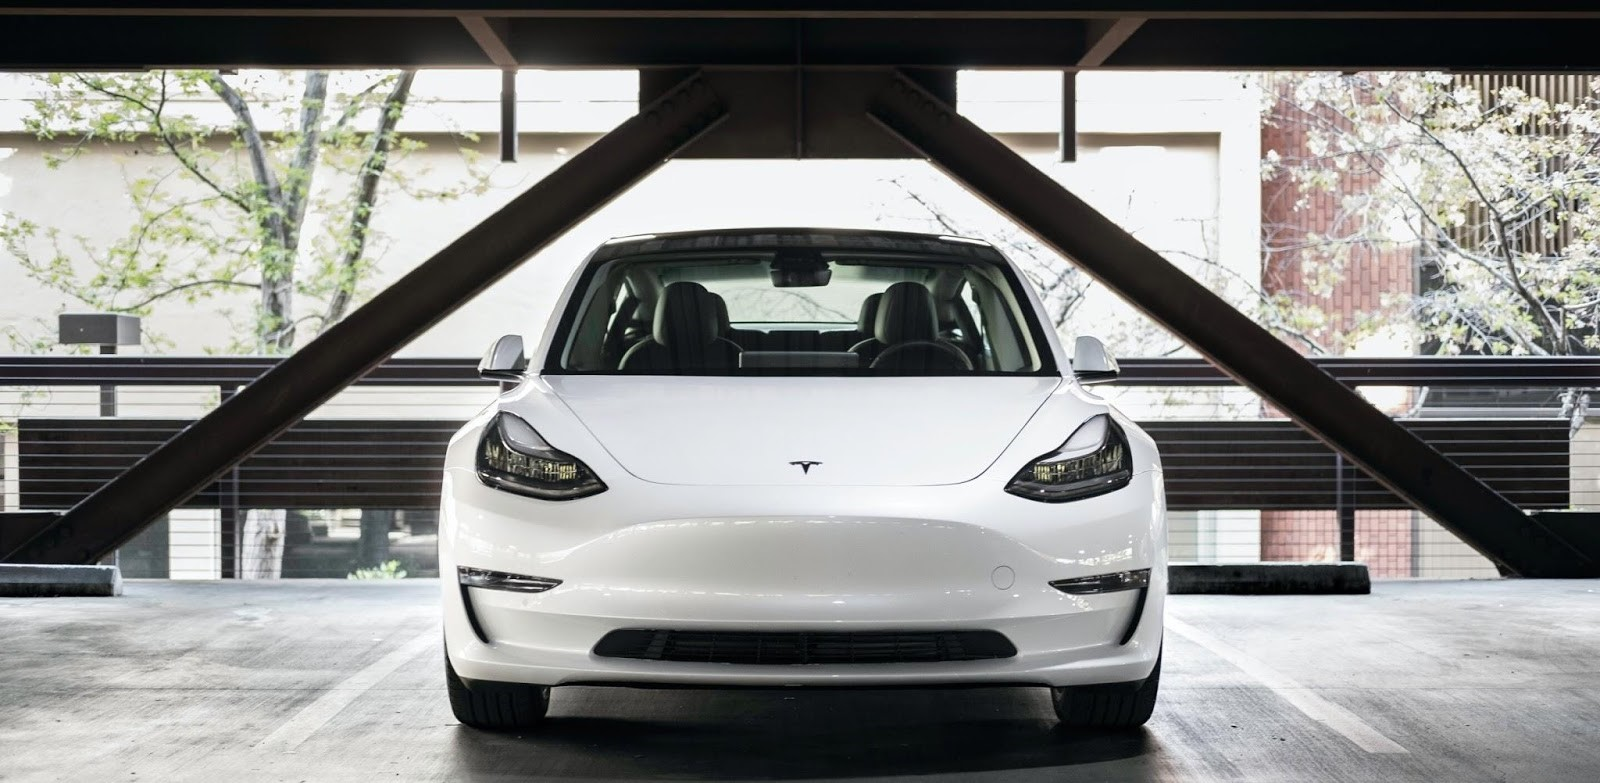 Not only EVs elegant to look at, but they are also the future of this planet!